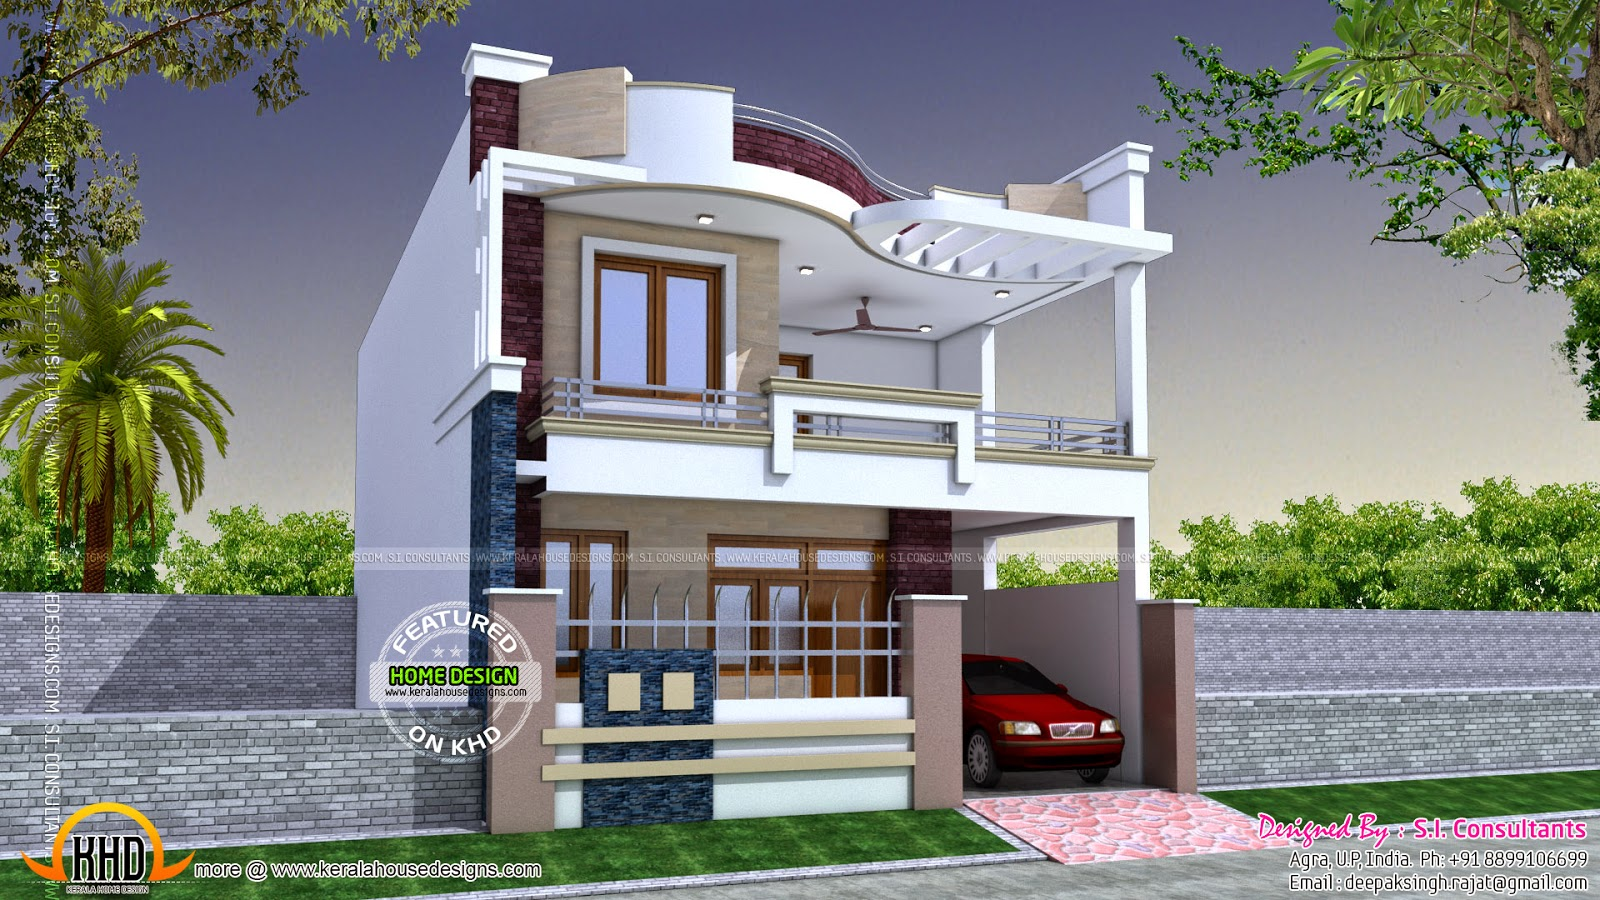 Modern indian home design kerala home design and floor plans for Indian home front design